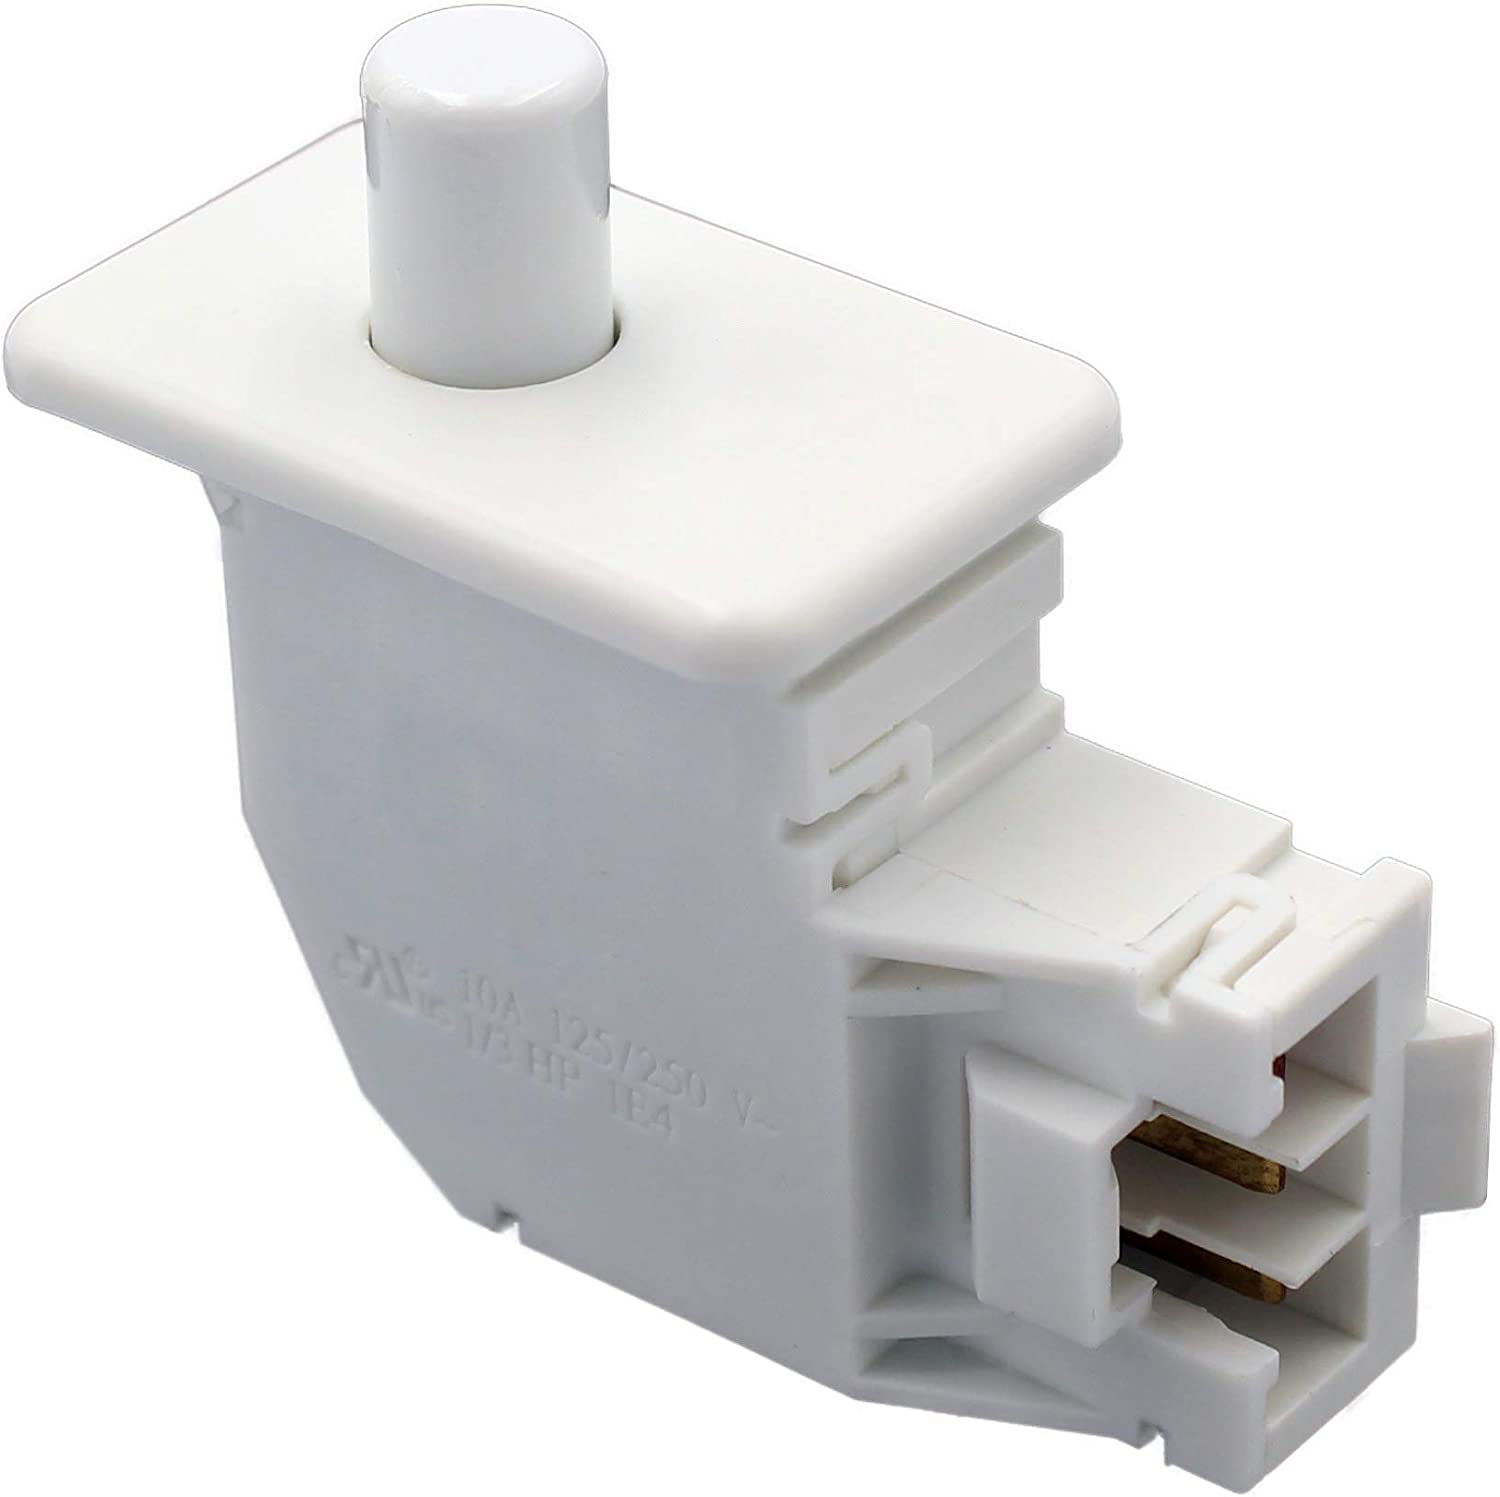 Supplying Demand WE10X23879 Dryer Door Switch Compatible With GE Fits PS11729233